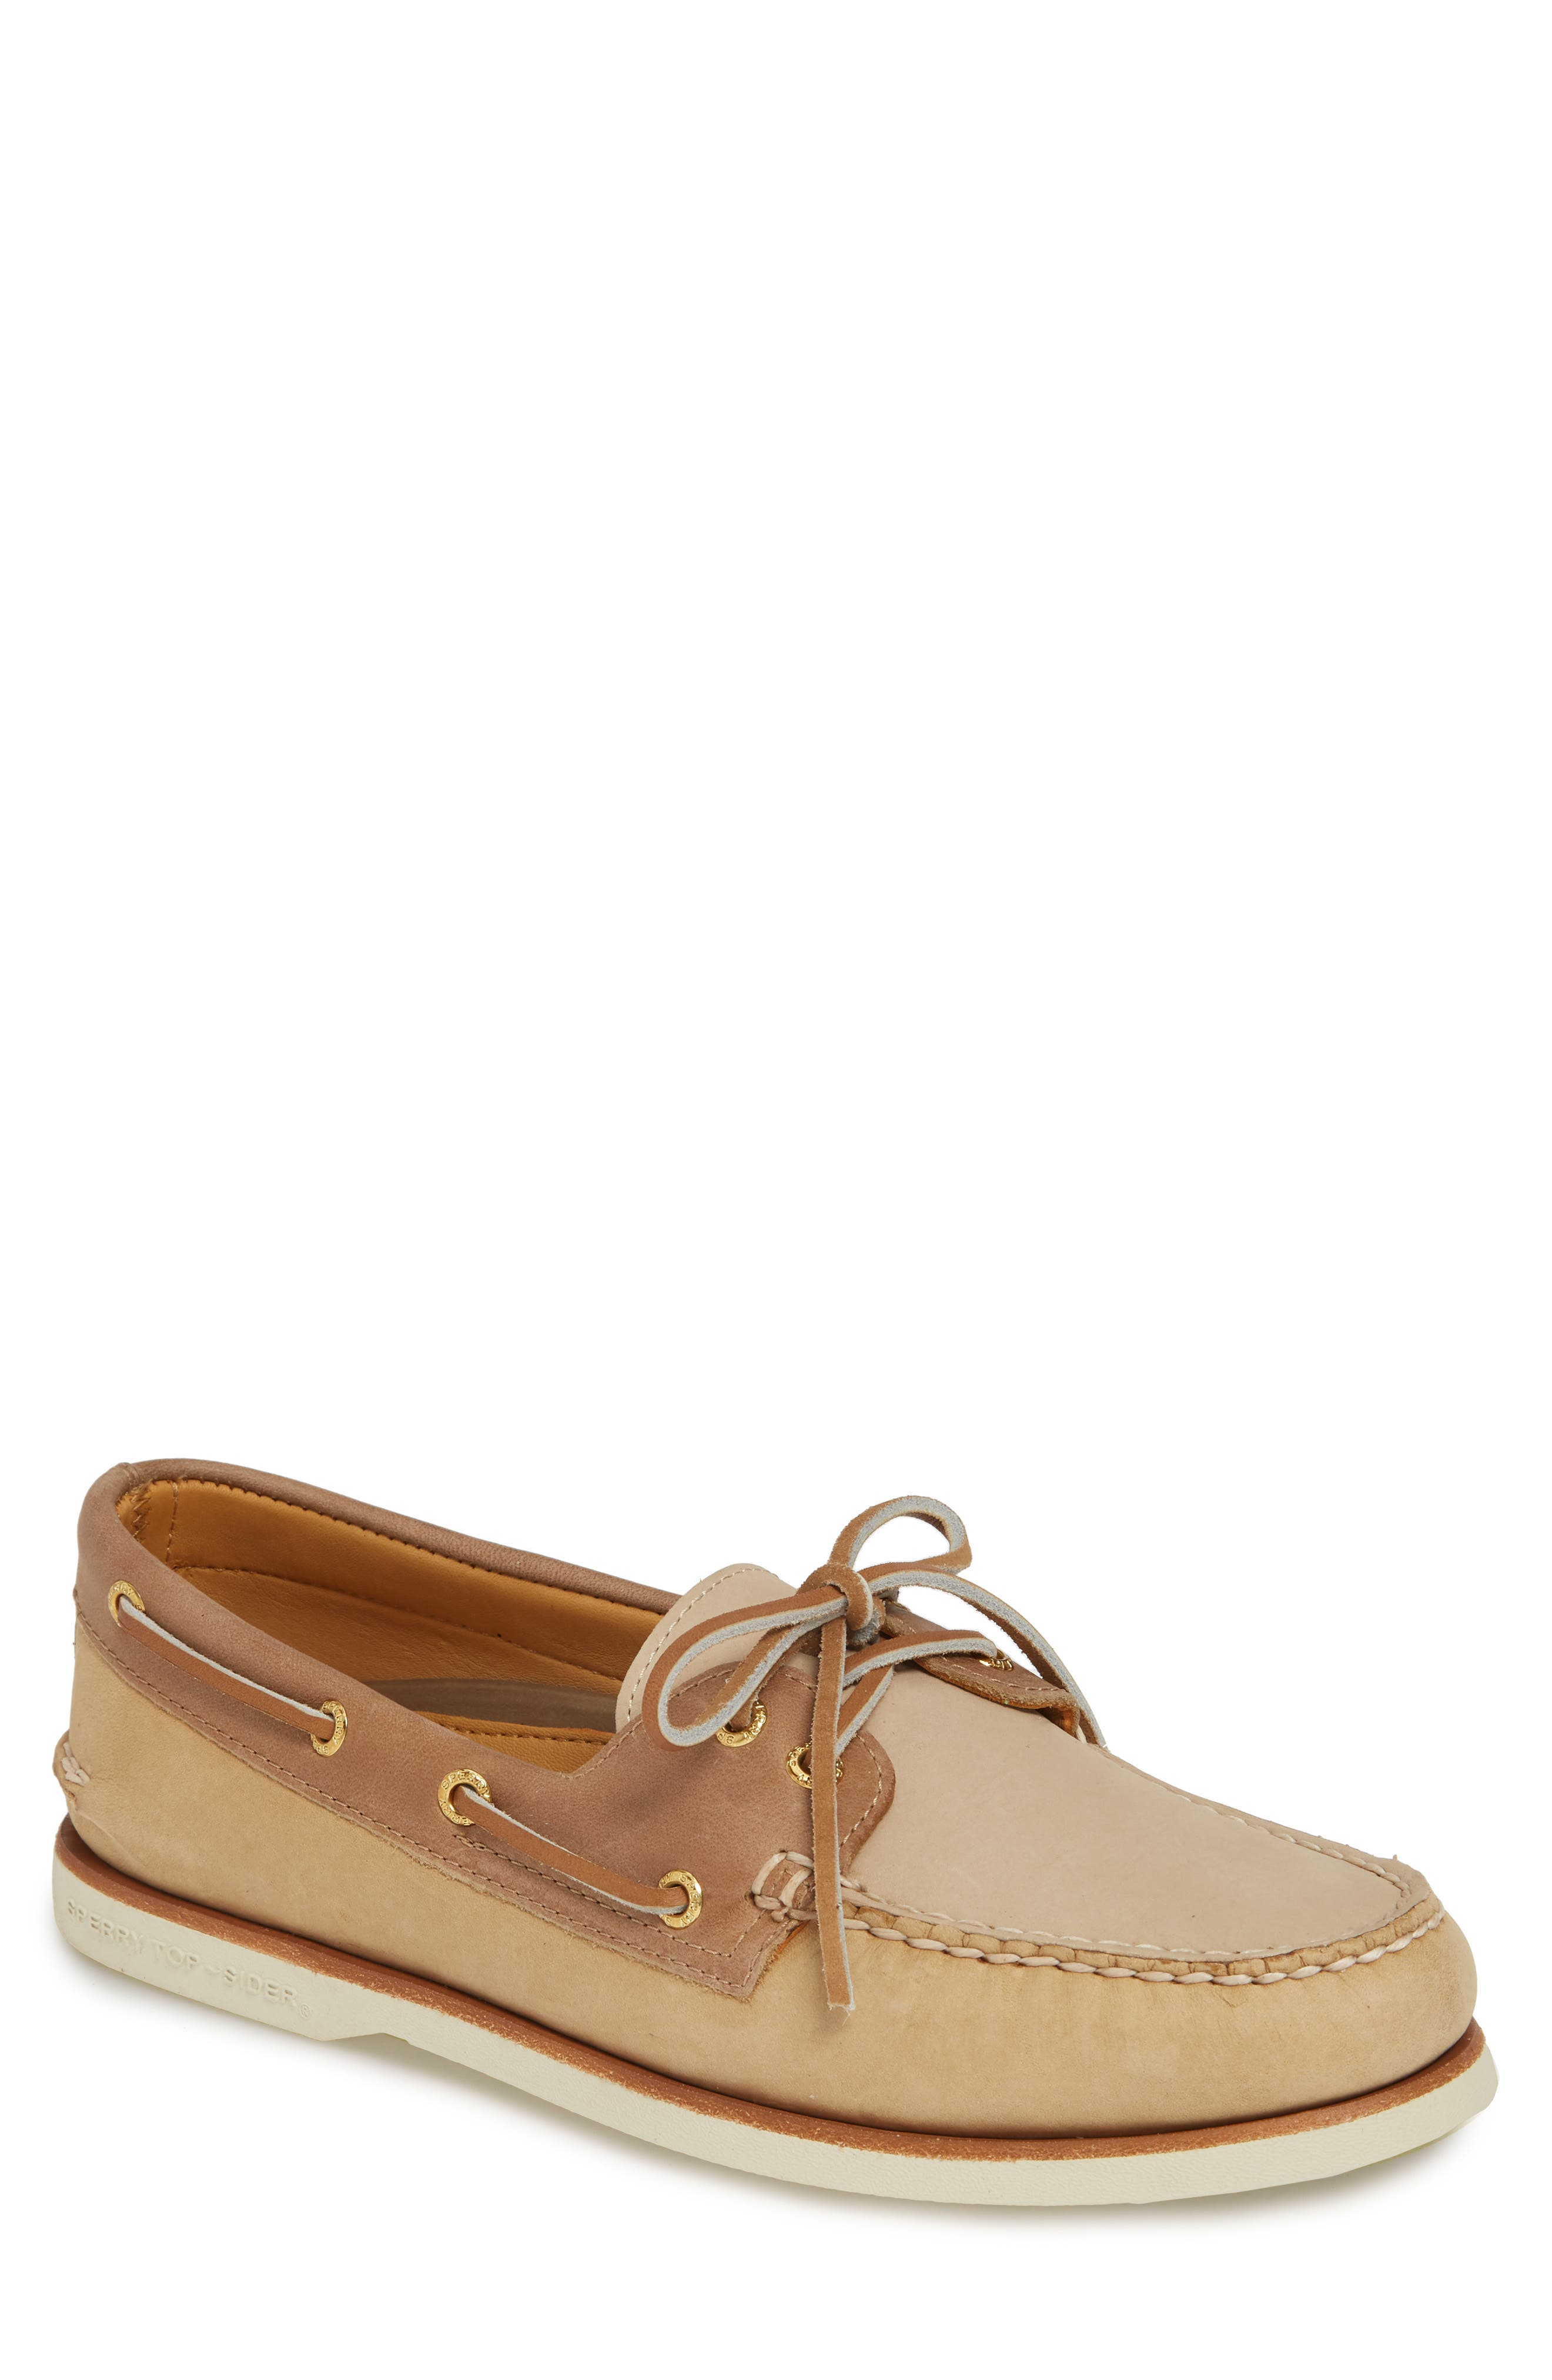 SPERRY, Gold Cup Authentic Original Boat Shoe, Main thumbnail 1, color, TAN/ BROWN/ CREAM LEATHER